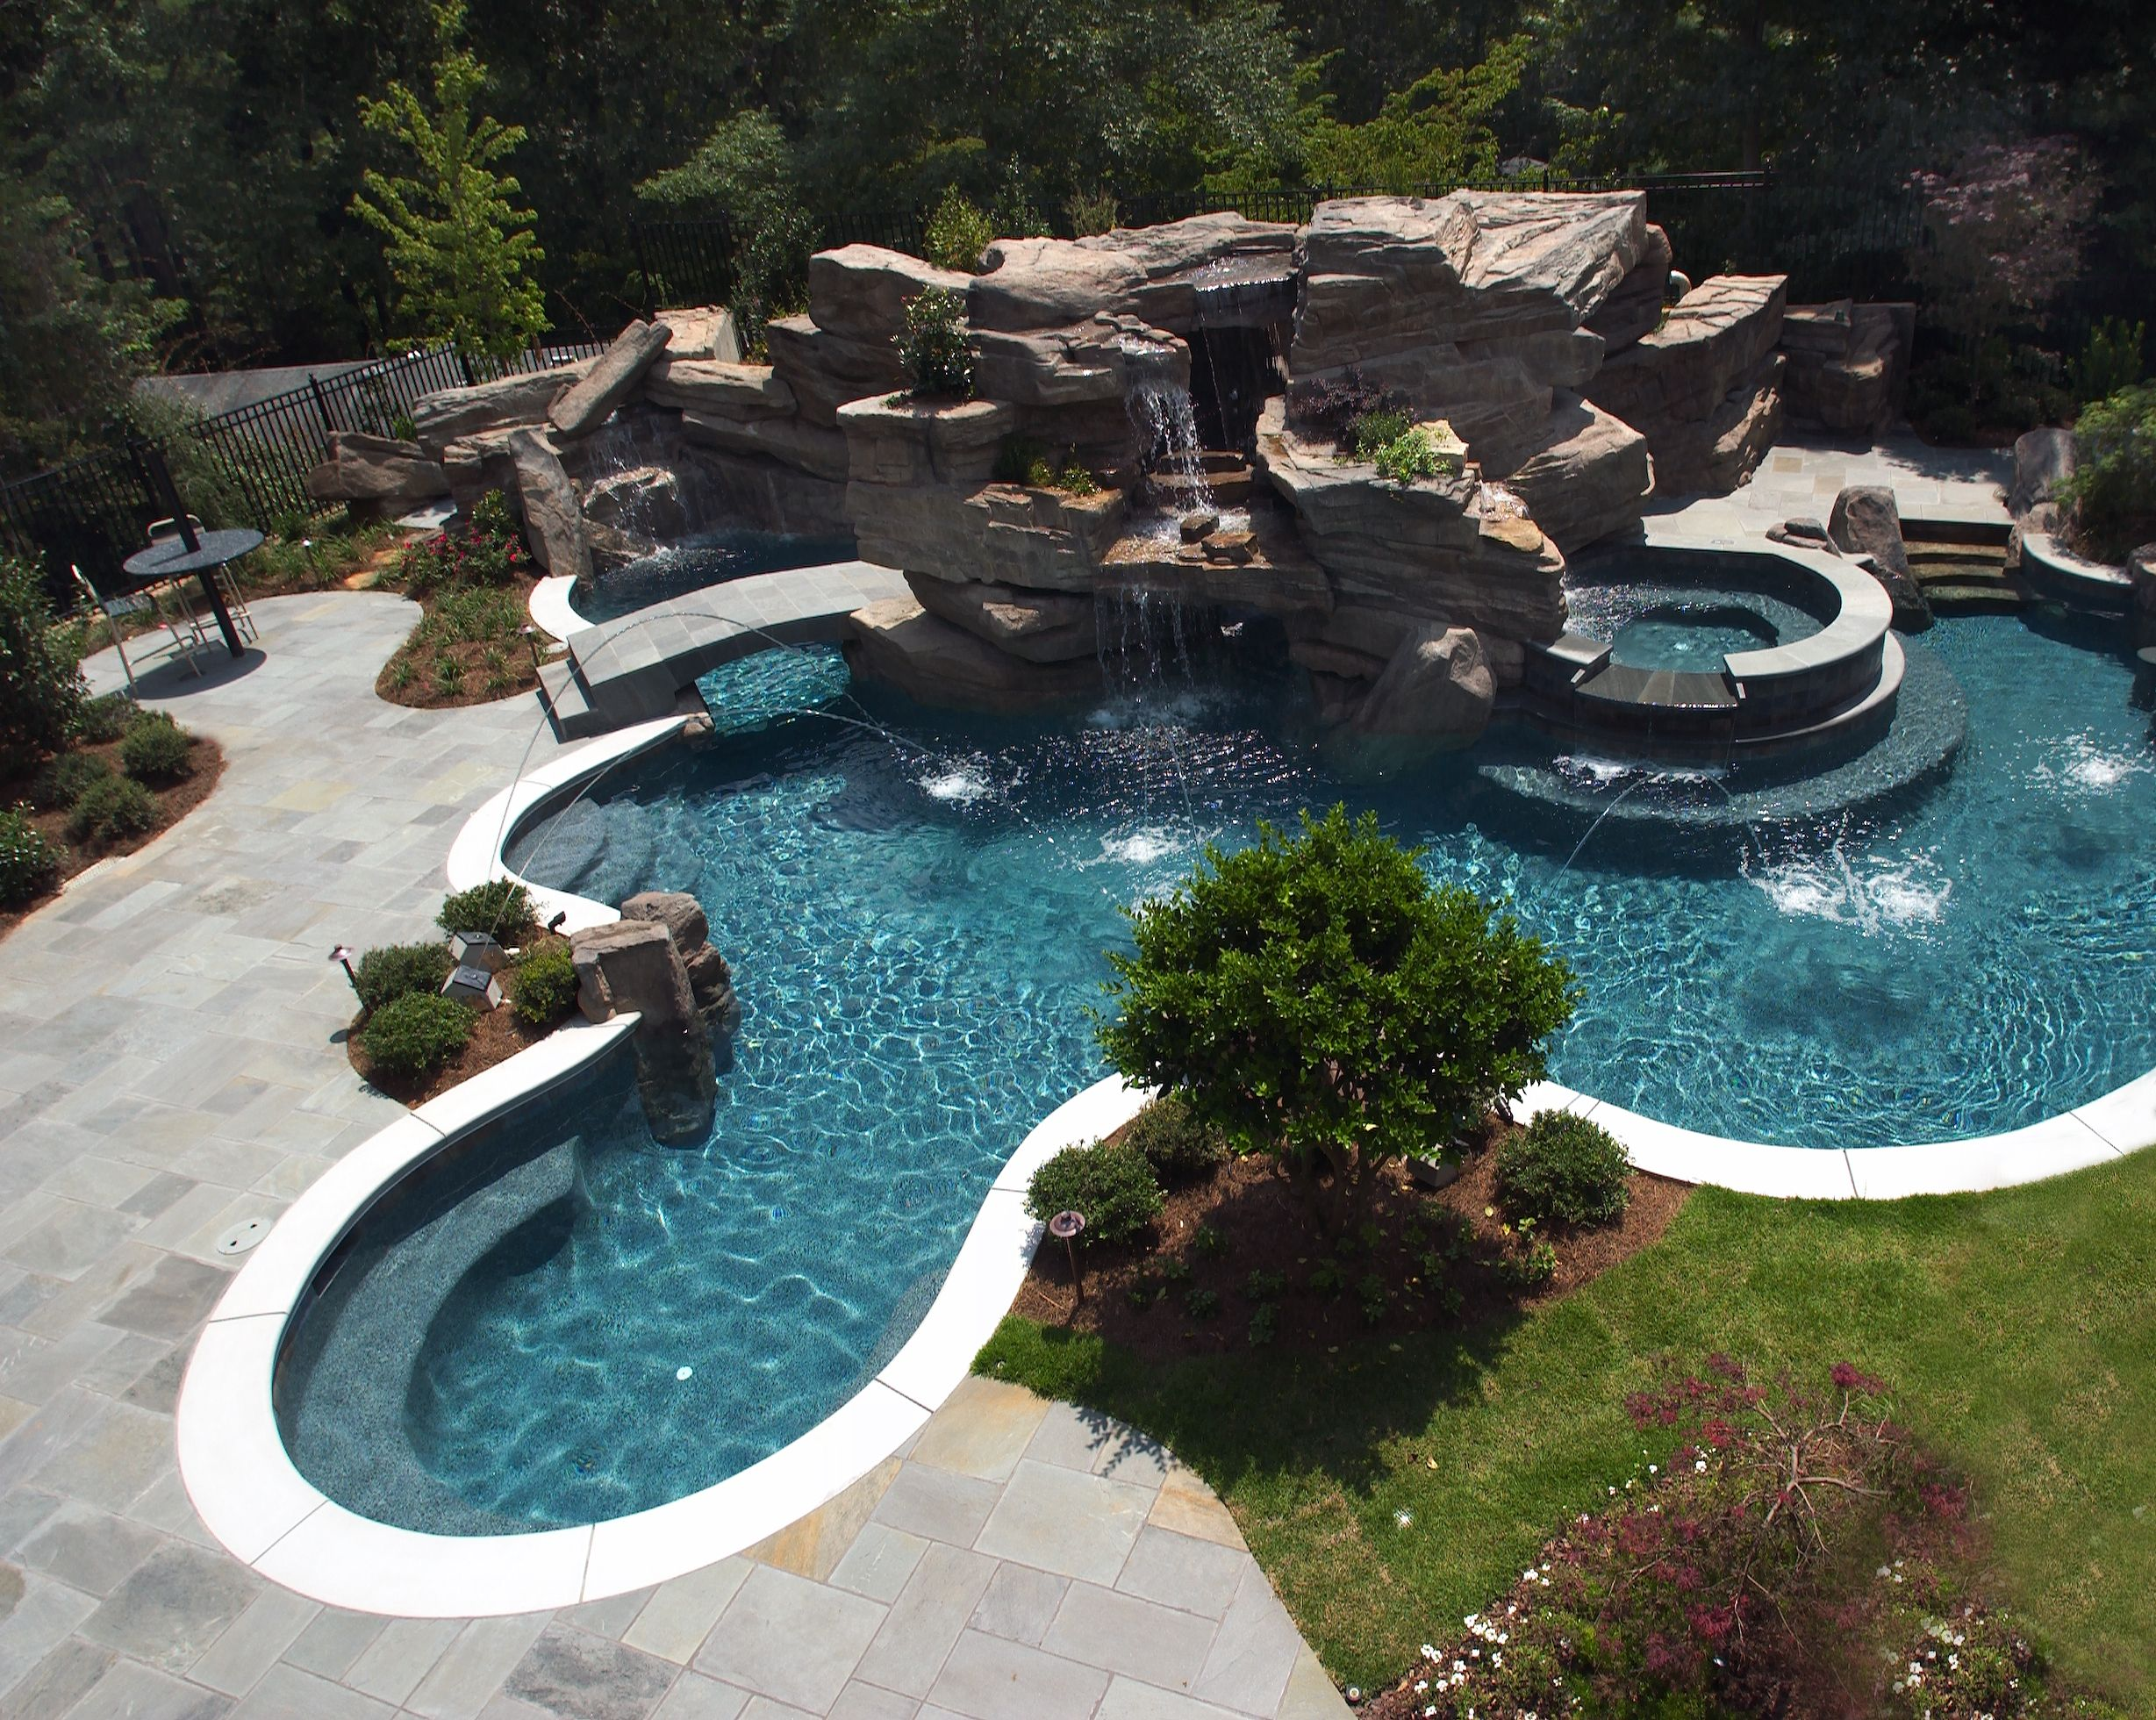 Big Garden Pools Of Elaborate Swimming Pool Featuring Large Grotto Waterfall